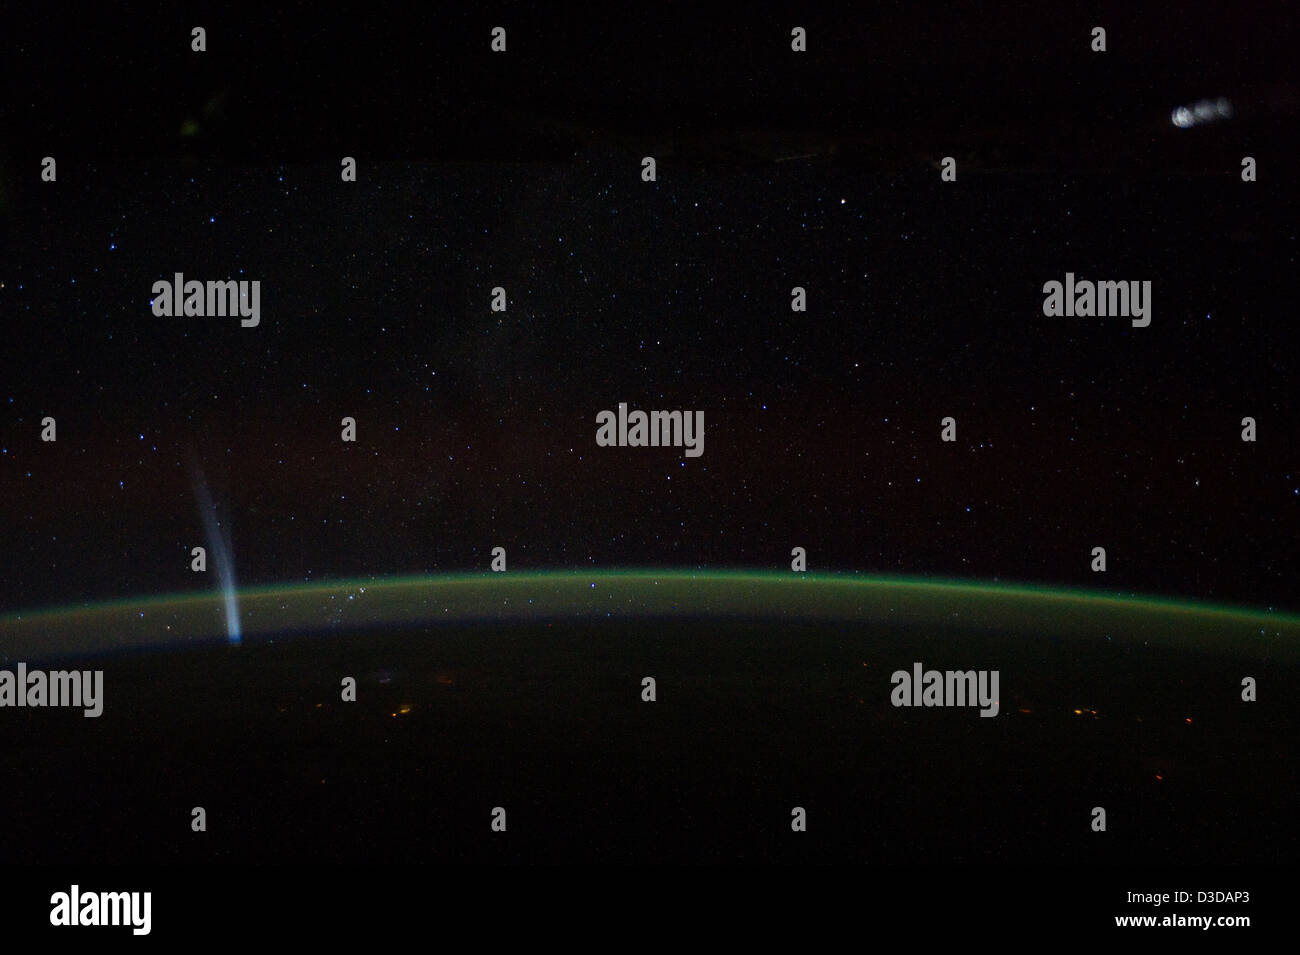 Lovejoy Stock Photos & Lovejoy Stock Images - Alamy